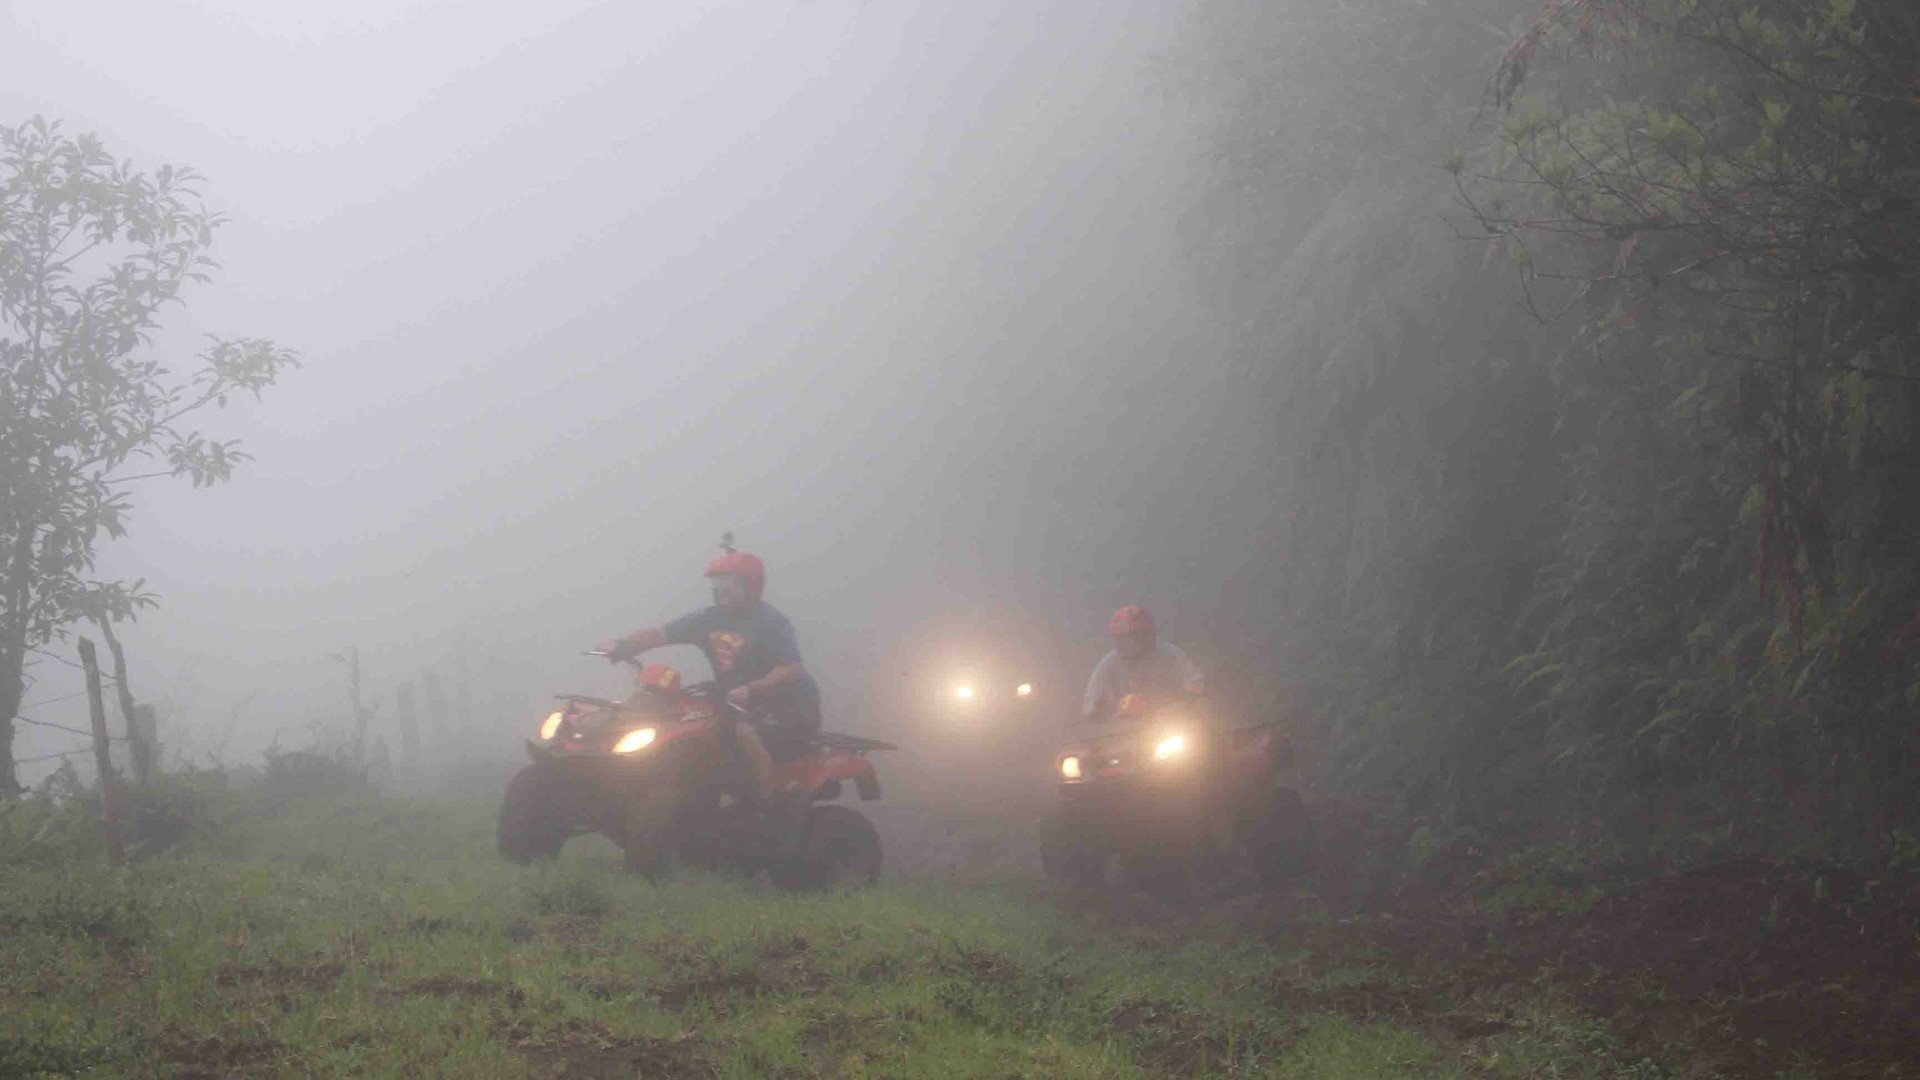 Costa Rica Monteverde Costa Rica ATV adventure tour group riding through dense fog cloud with lights on